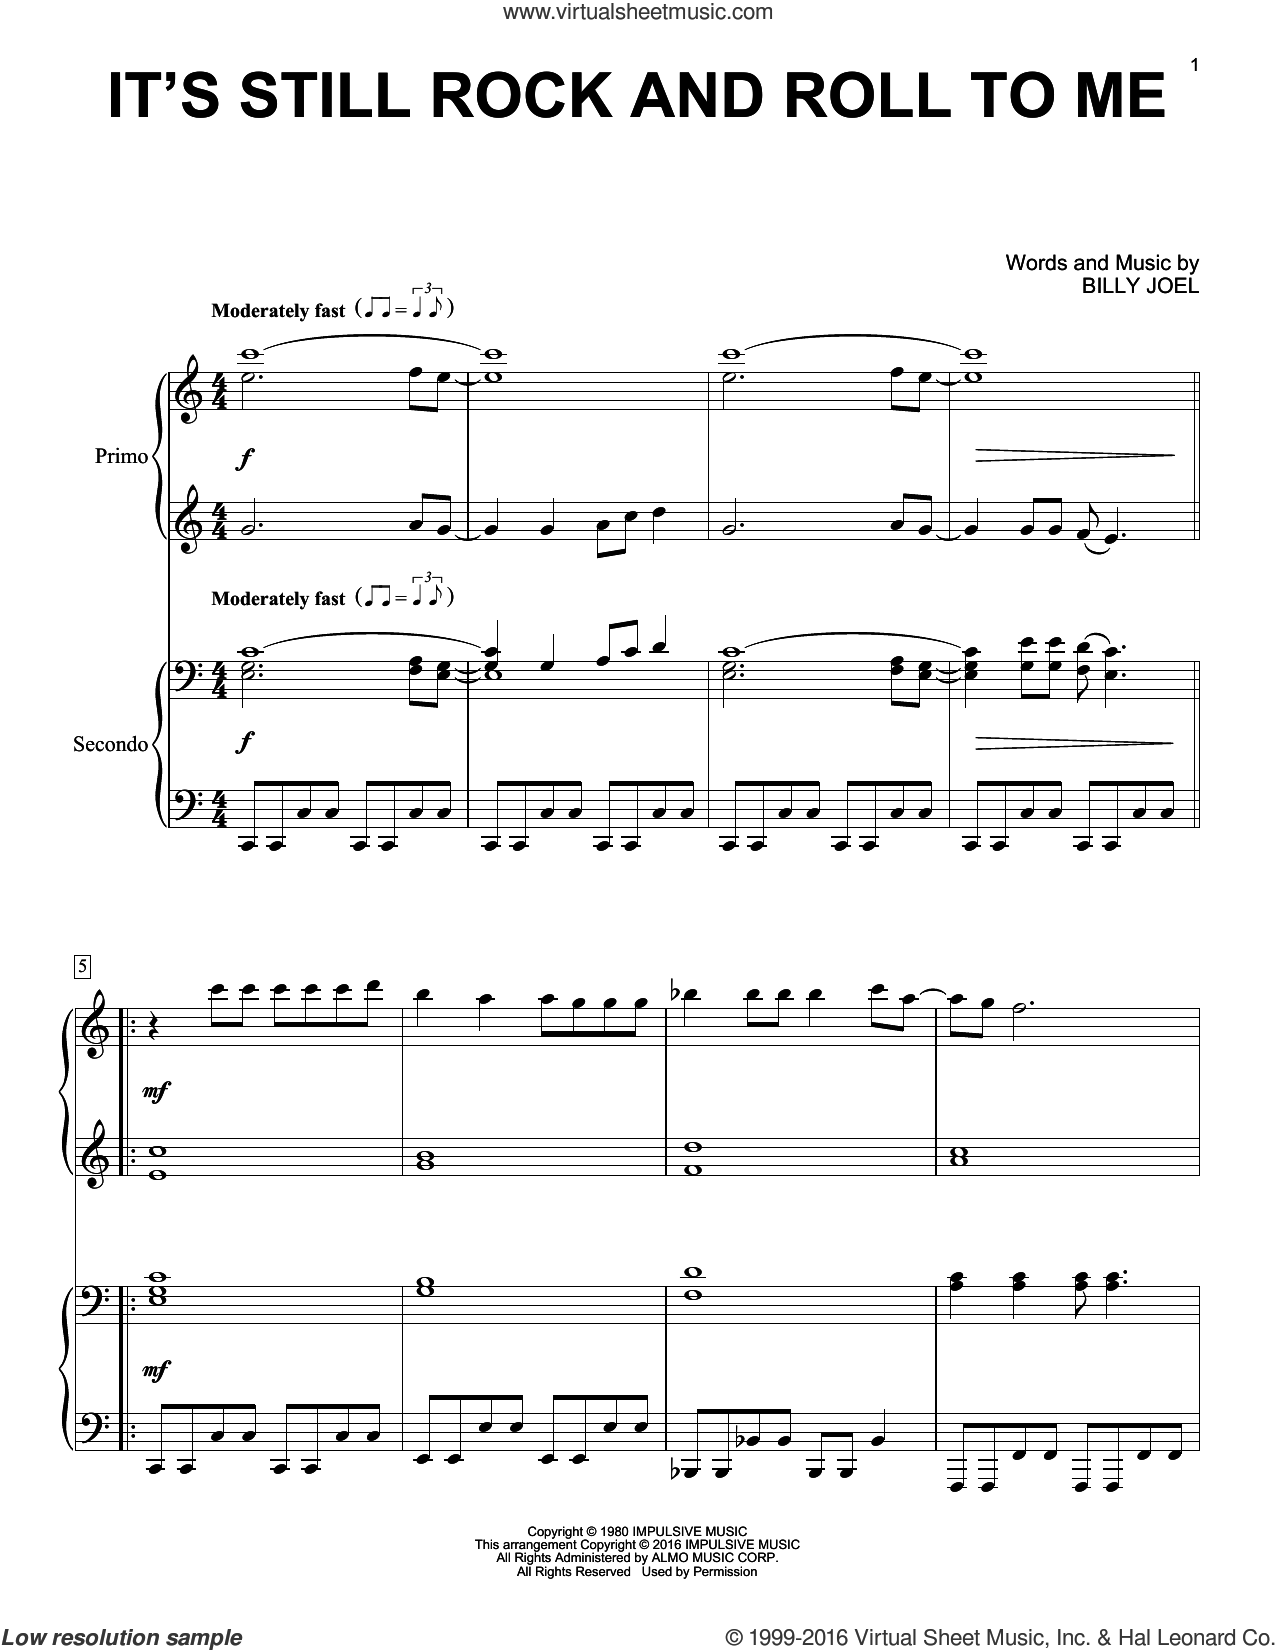 It's Still Rock And Roll To Me sheet music for piano four hands by Billy Joel, intermediate skill level